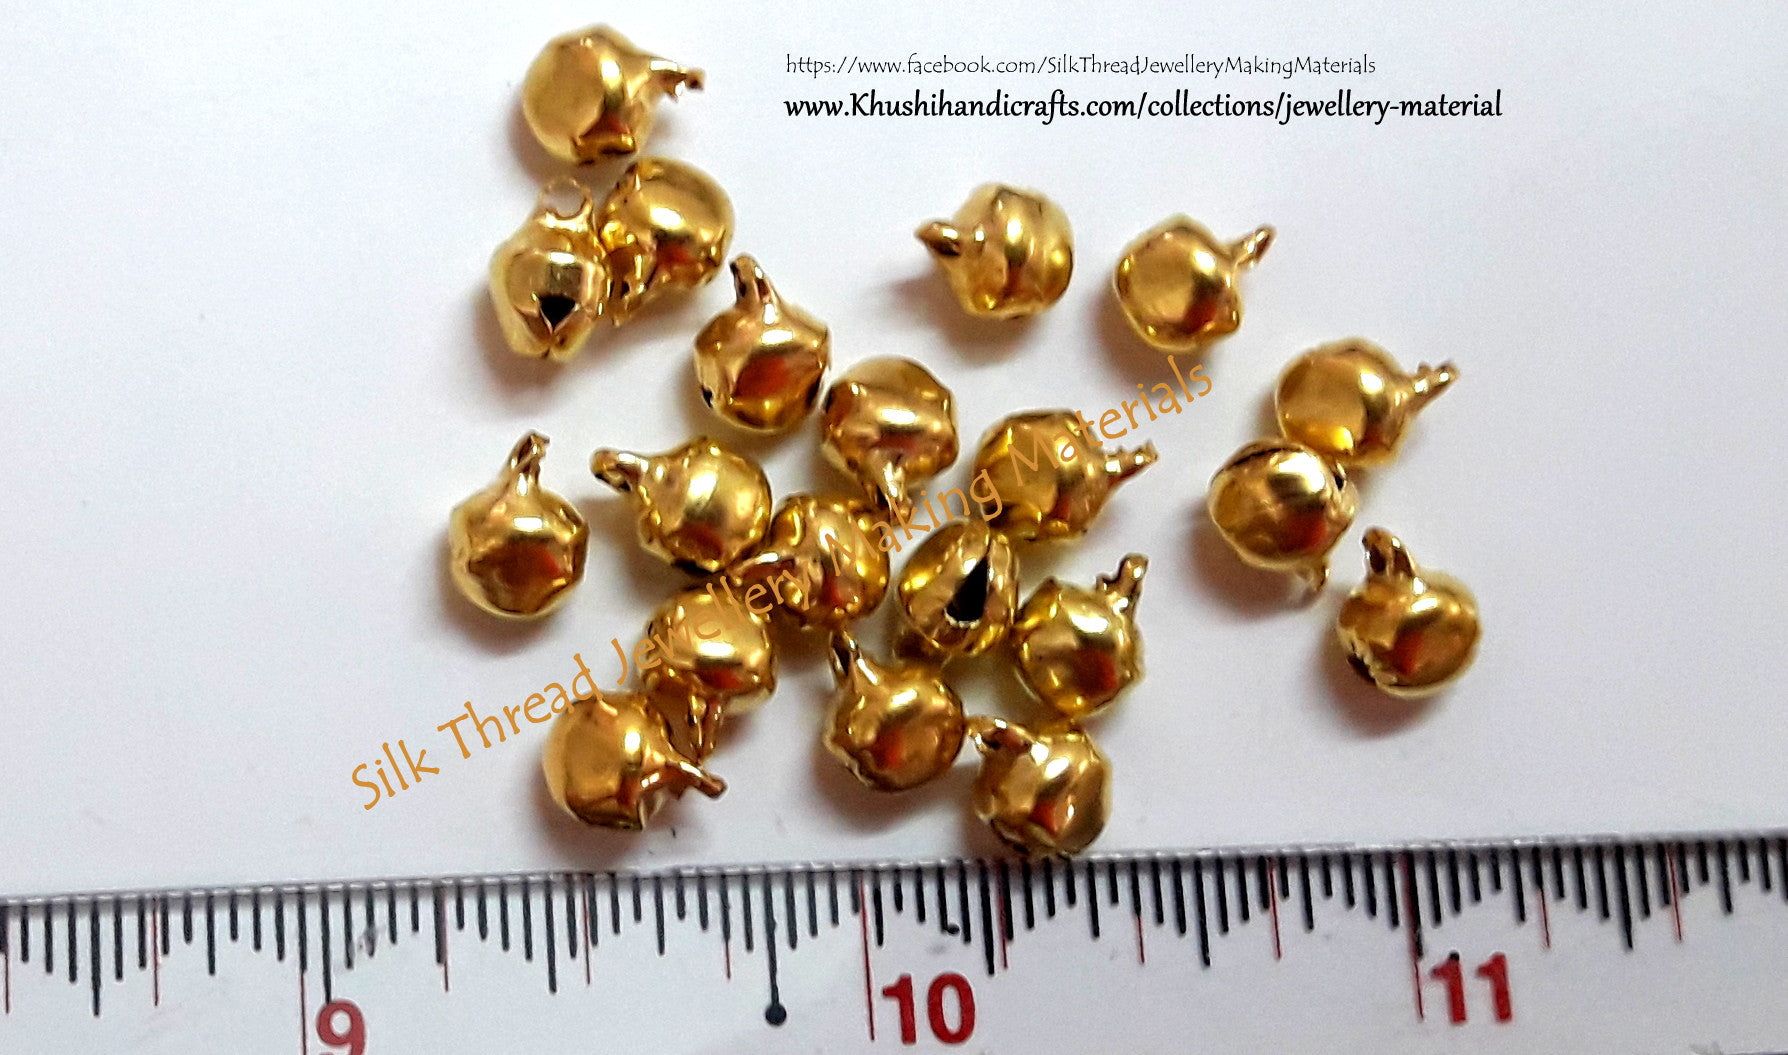 Gungaroo Beads.Jewelry Materials